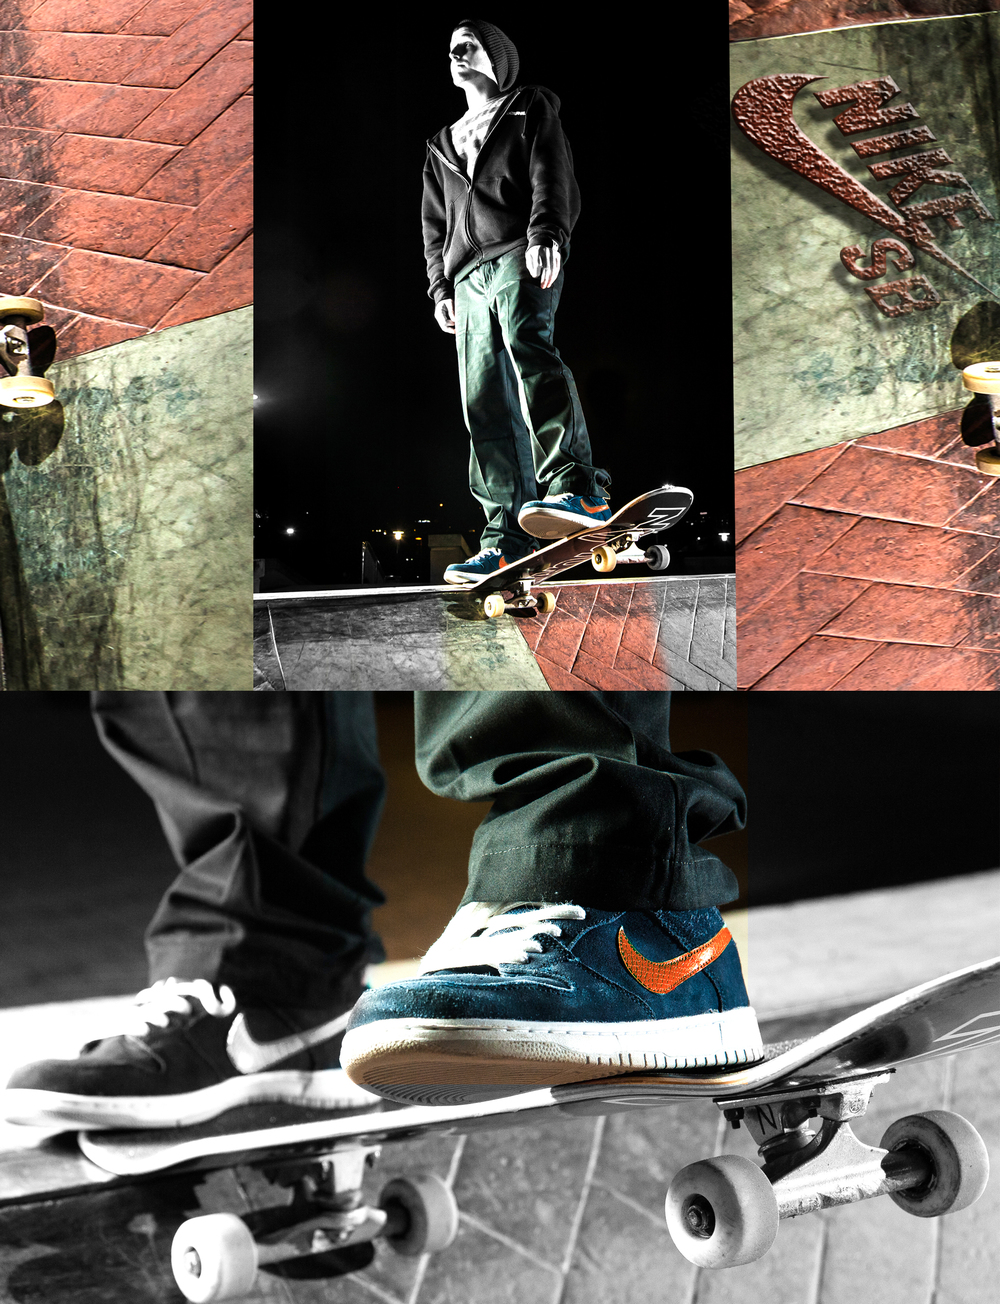 "<alt=""Jusphotography commcerical Photography Nike Skateboarding Shoe"" >"